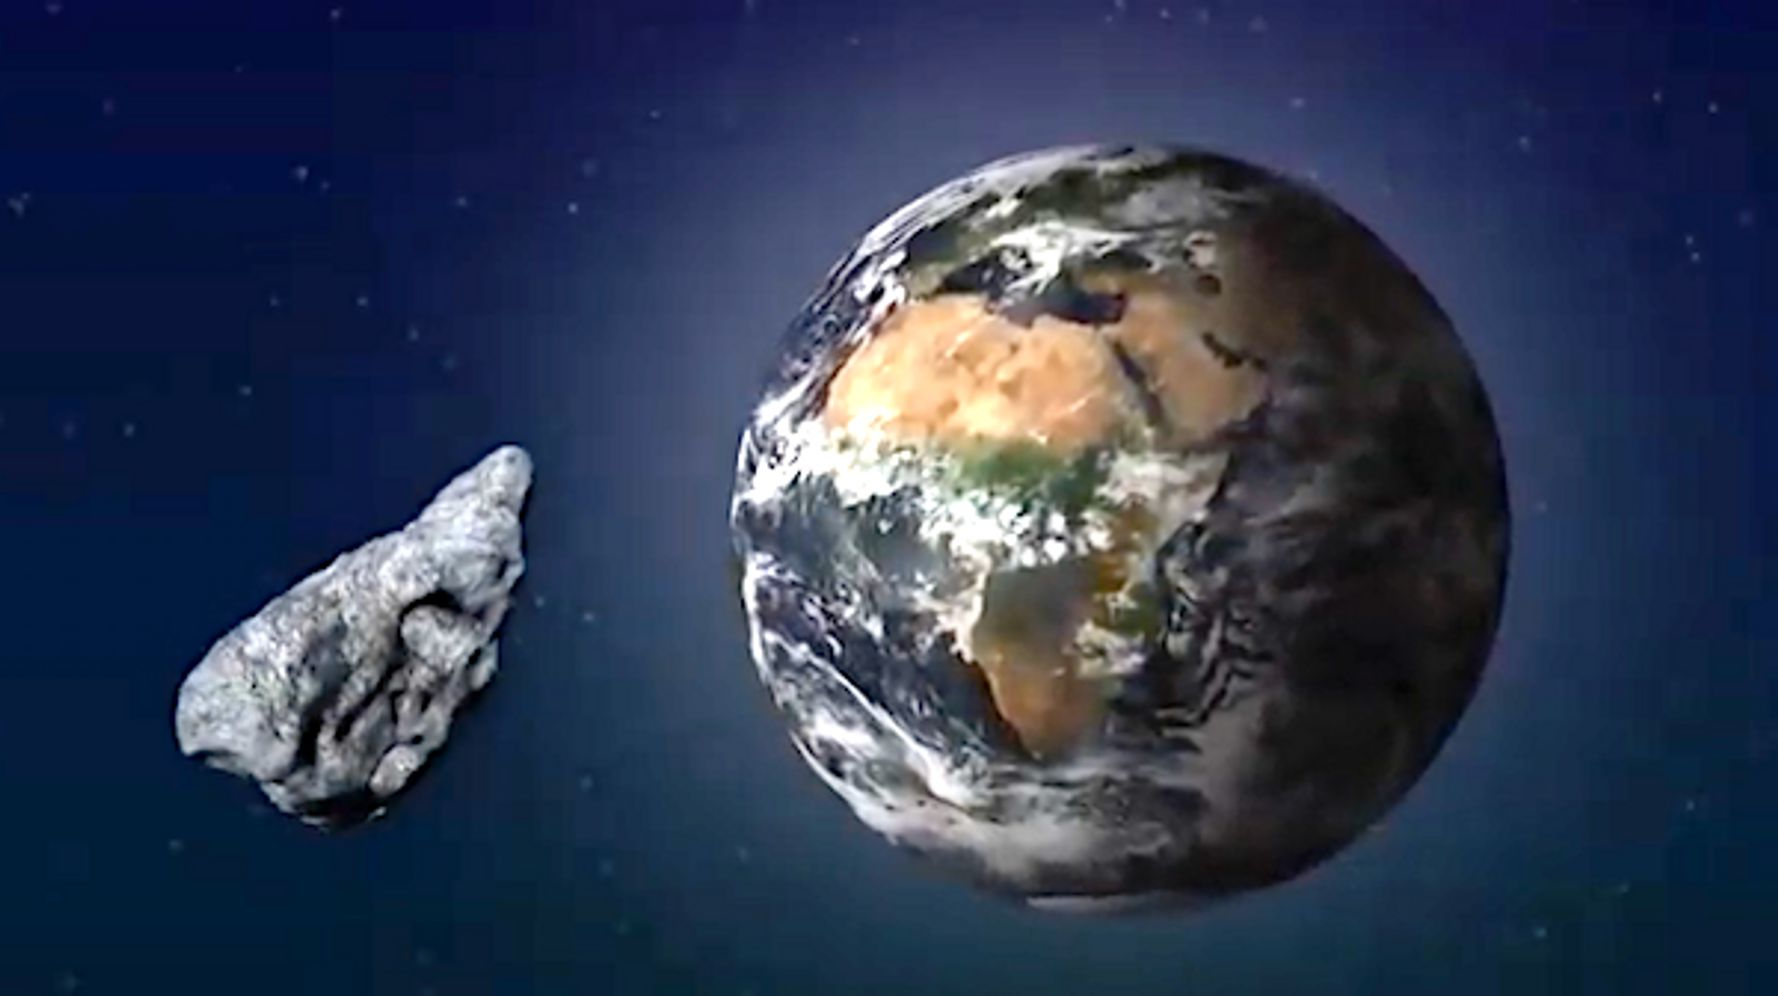 Asteroid On Track To Buzz Earth The Day Before The Presidential Election - HuffPost